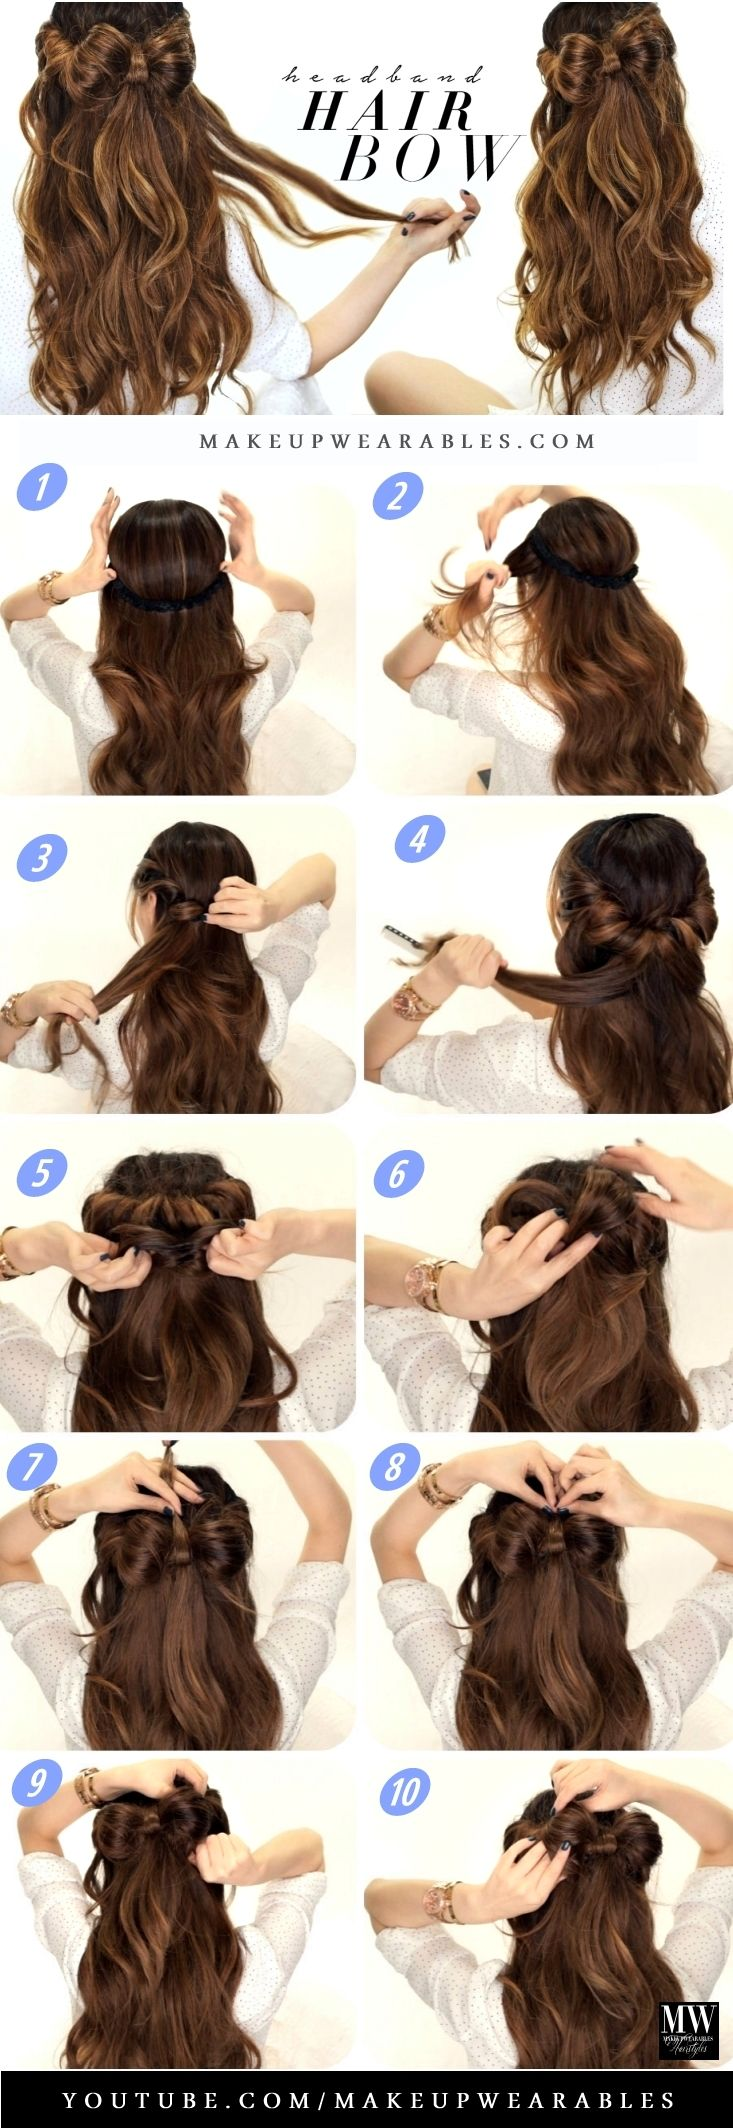 Awe Inspiring 1000 Ideas About Bow Hairstyles On Pinterest Hair Bow Short Hairstyles Gunalazisus